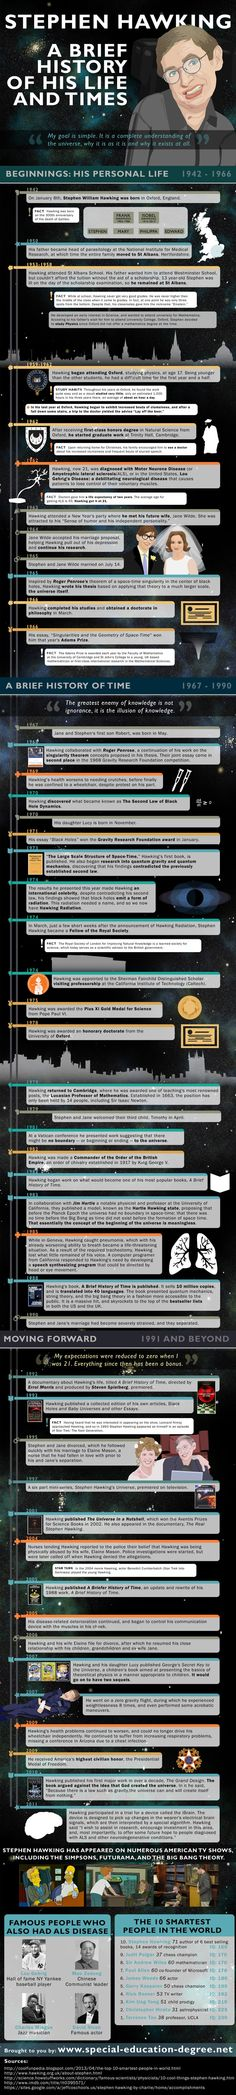 Stephen Hawking Biography : Stephen Hawking has been broadly recognized as one of the most influential personalities of our times. Have a look at his personal and scientific feats presented on a timeline.  > http://infographicsmania.com/stephen-hawking-biography/?utm_source=Pinterest&utm_medium=ZAKKAS&utm_campaign=SNAP